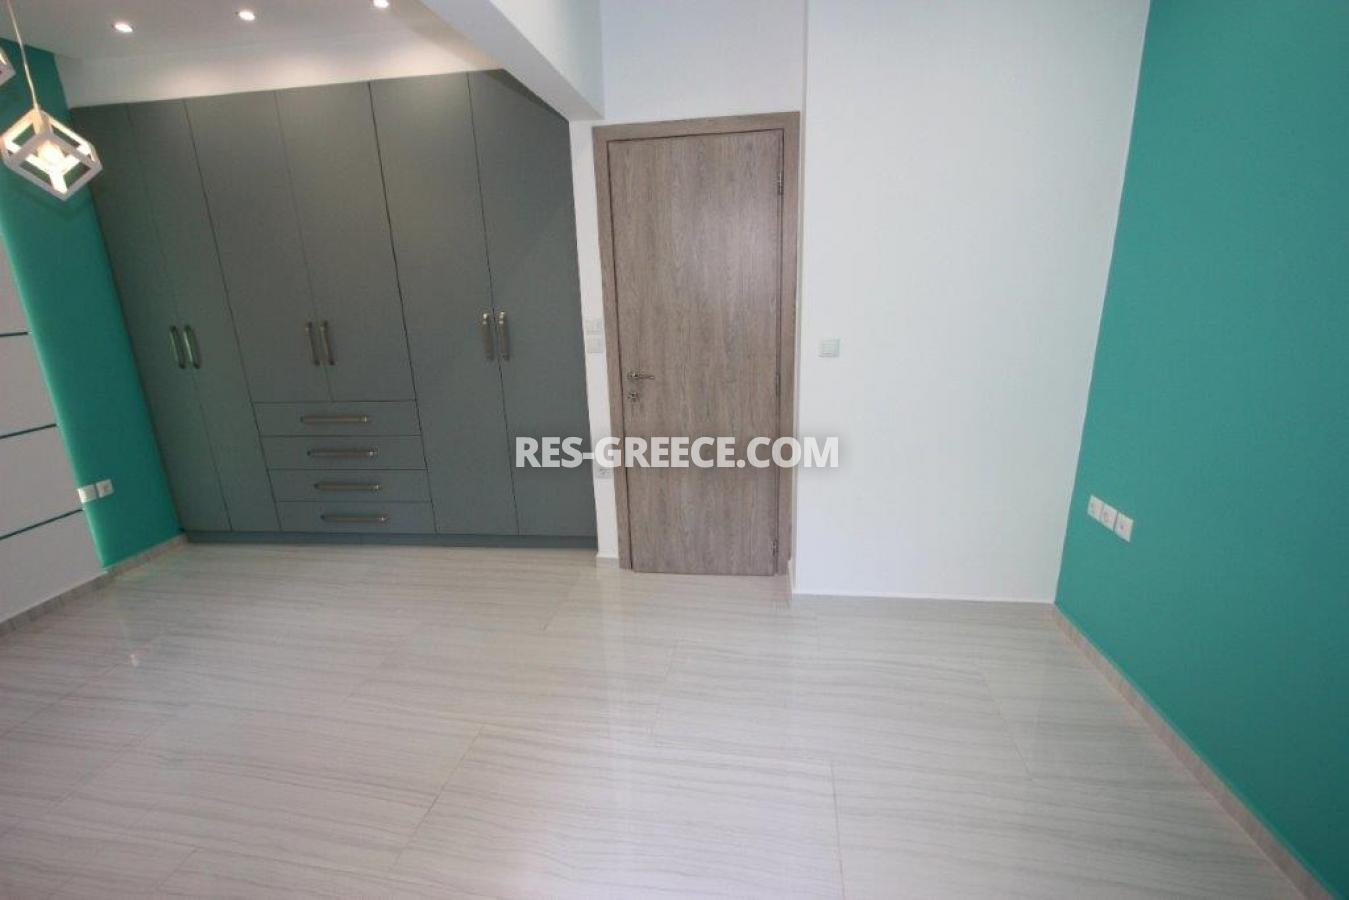 Poli 21, Central Macedonia, Greece - Apartment for residence or for long term rent - Photo 7